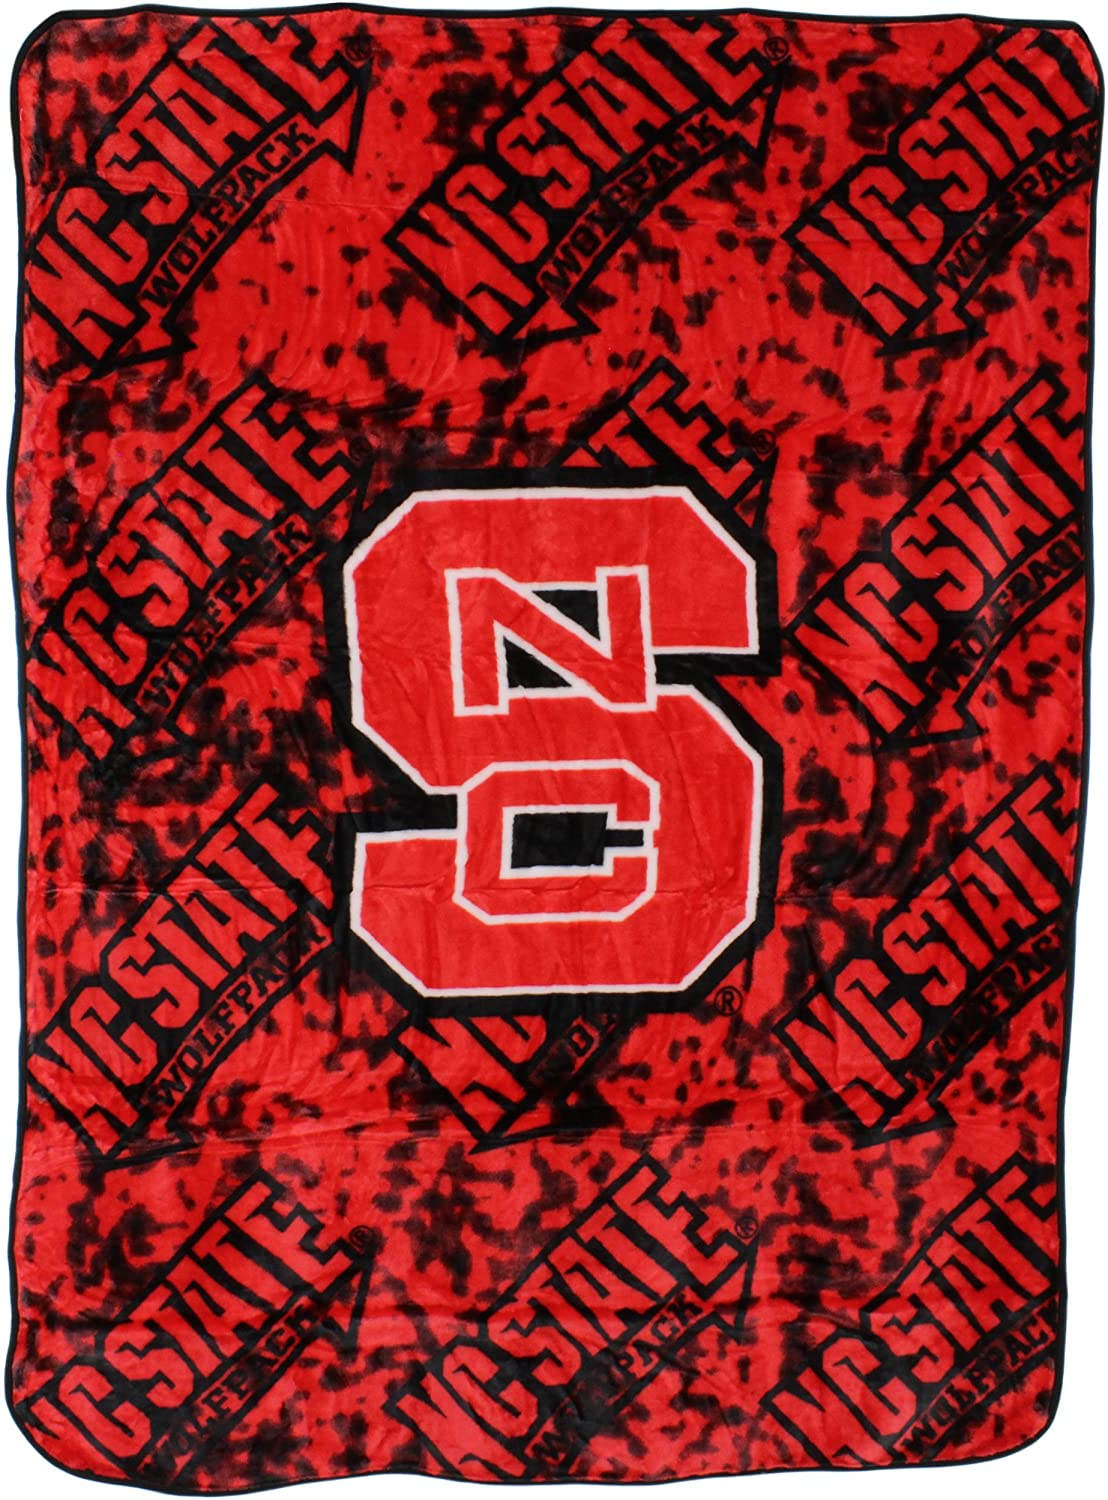 Ncaa Throw Blanket Nc State Wolfpack Fleece Blanket